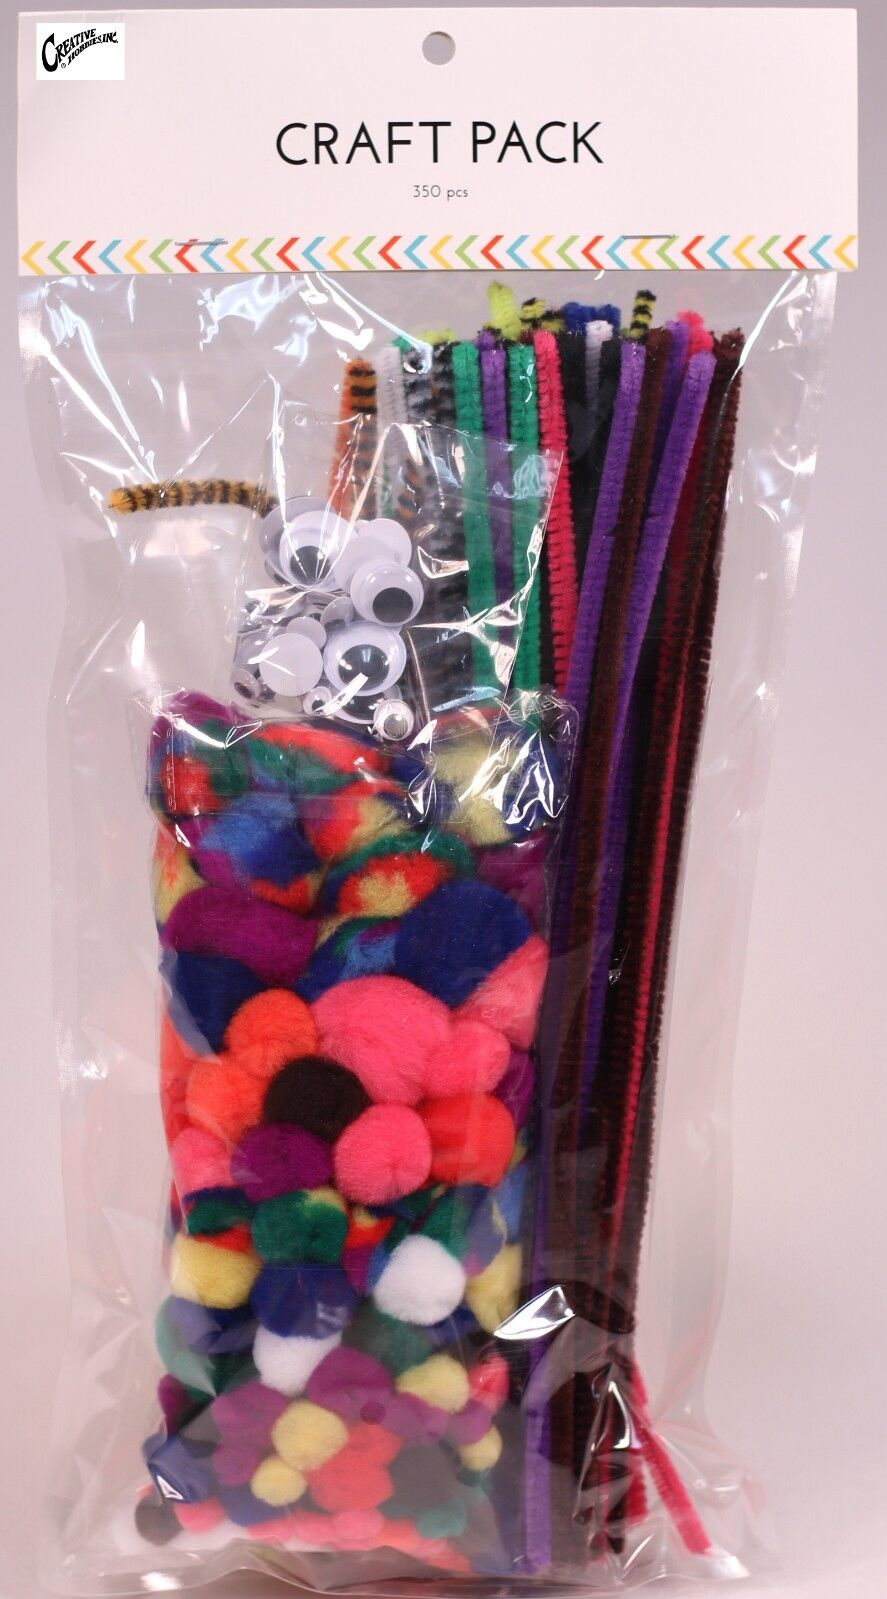 350 pc Craft Kit Value Pack, Primary Color, Pom Poms, Googly Eyes, Pipe Cleaners Craft Kits